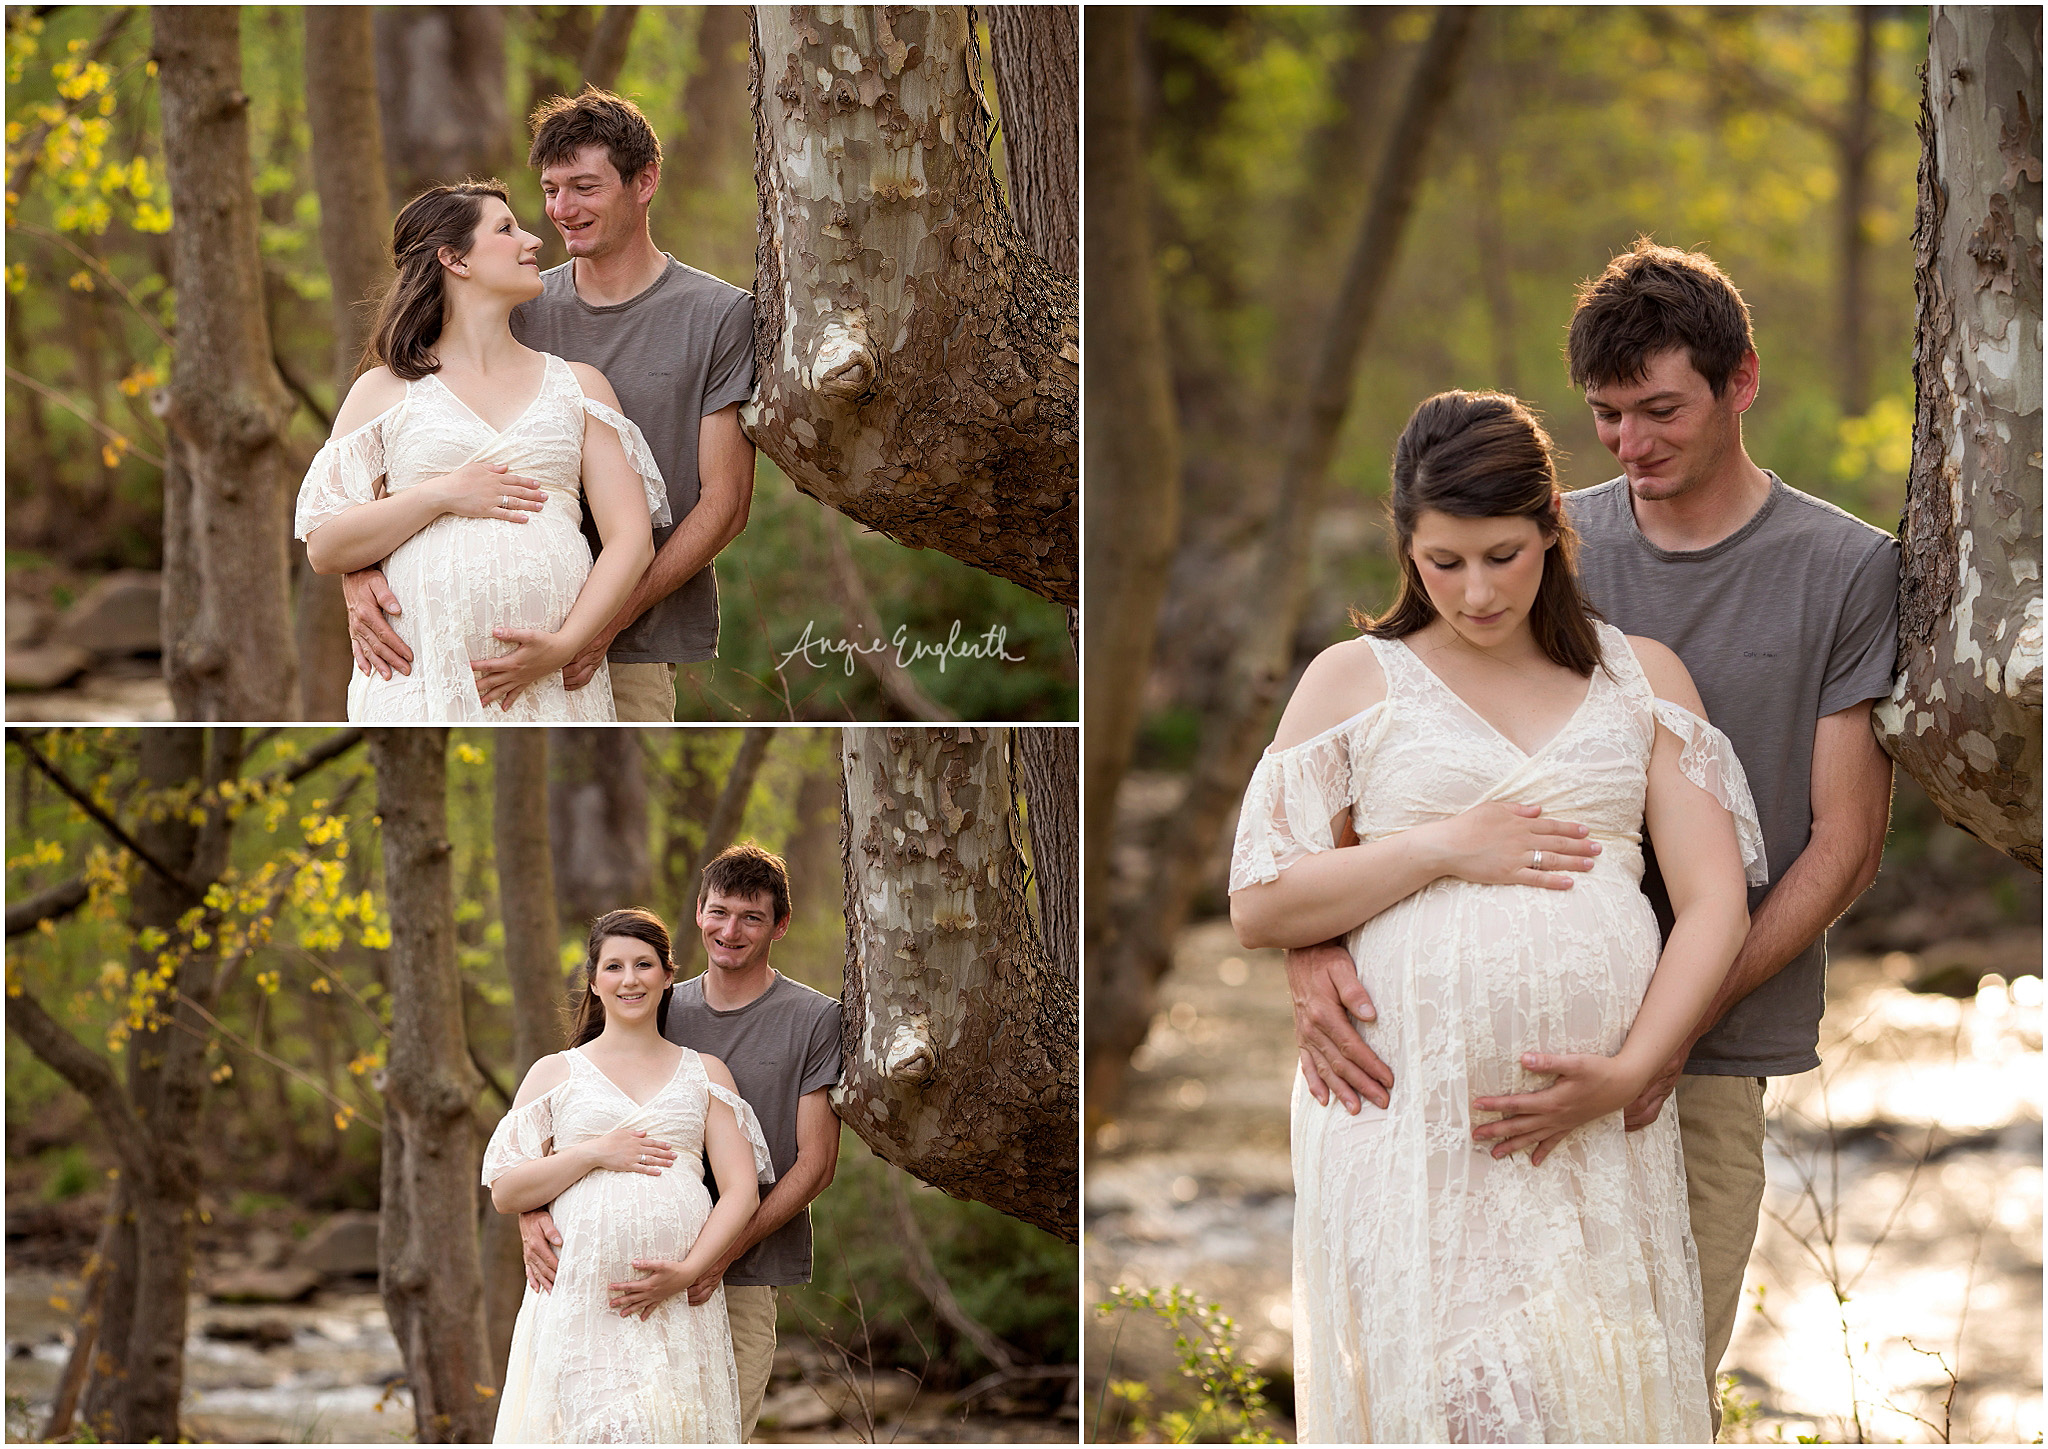 lancaster_maternity_photographer_angie_englerth_lancaster_central_pa_aep_016.jpg